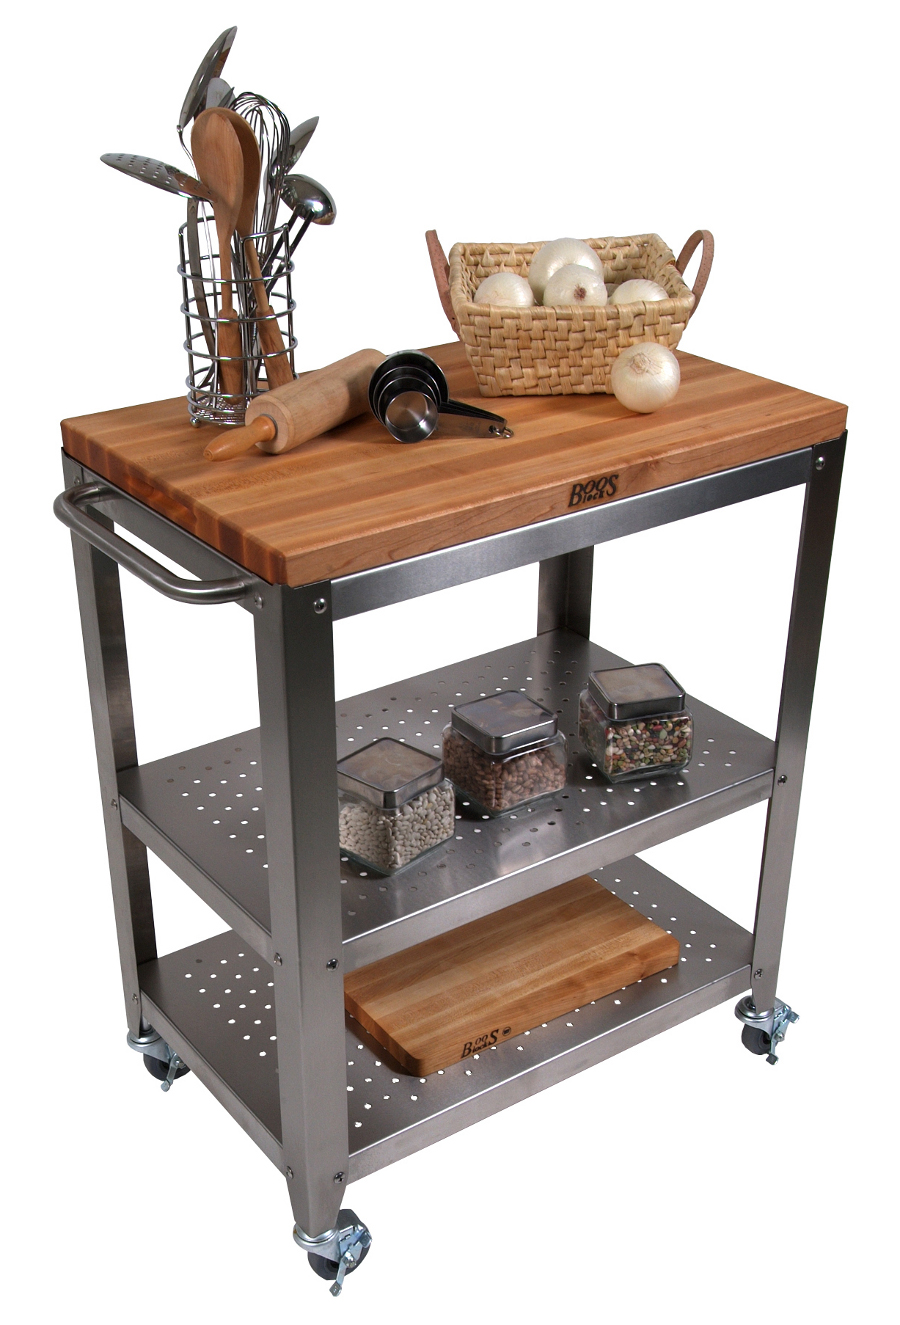 Boos Cucina Culinarte Cart – Removable Butcher Block Top